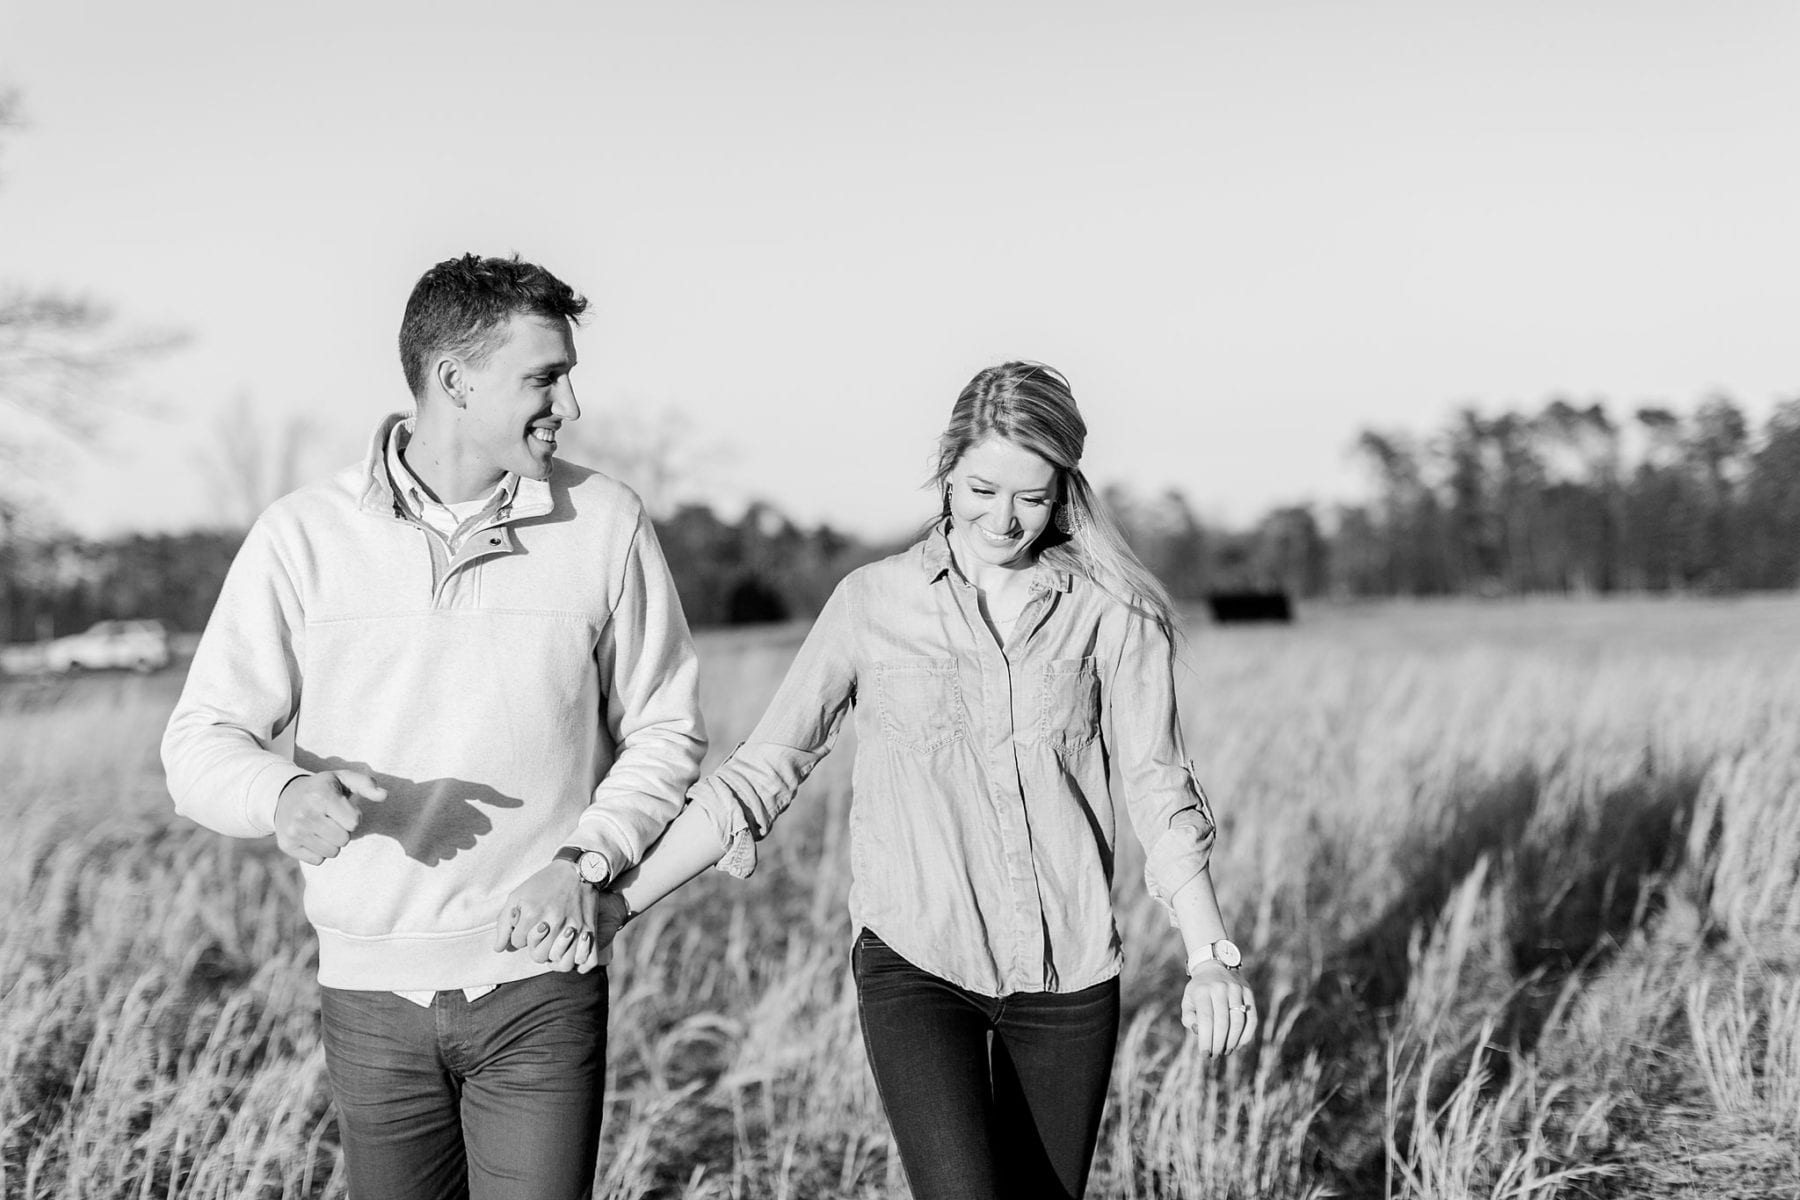 Manassas Battlefield Engagement Session Virginia Wedding Photographer Danielle & Charlie Megan Kelsey Photography-5783-2.jpg